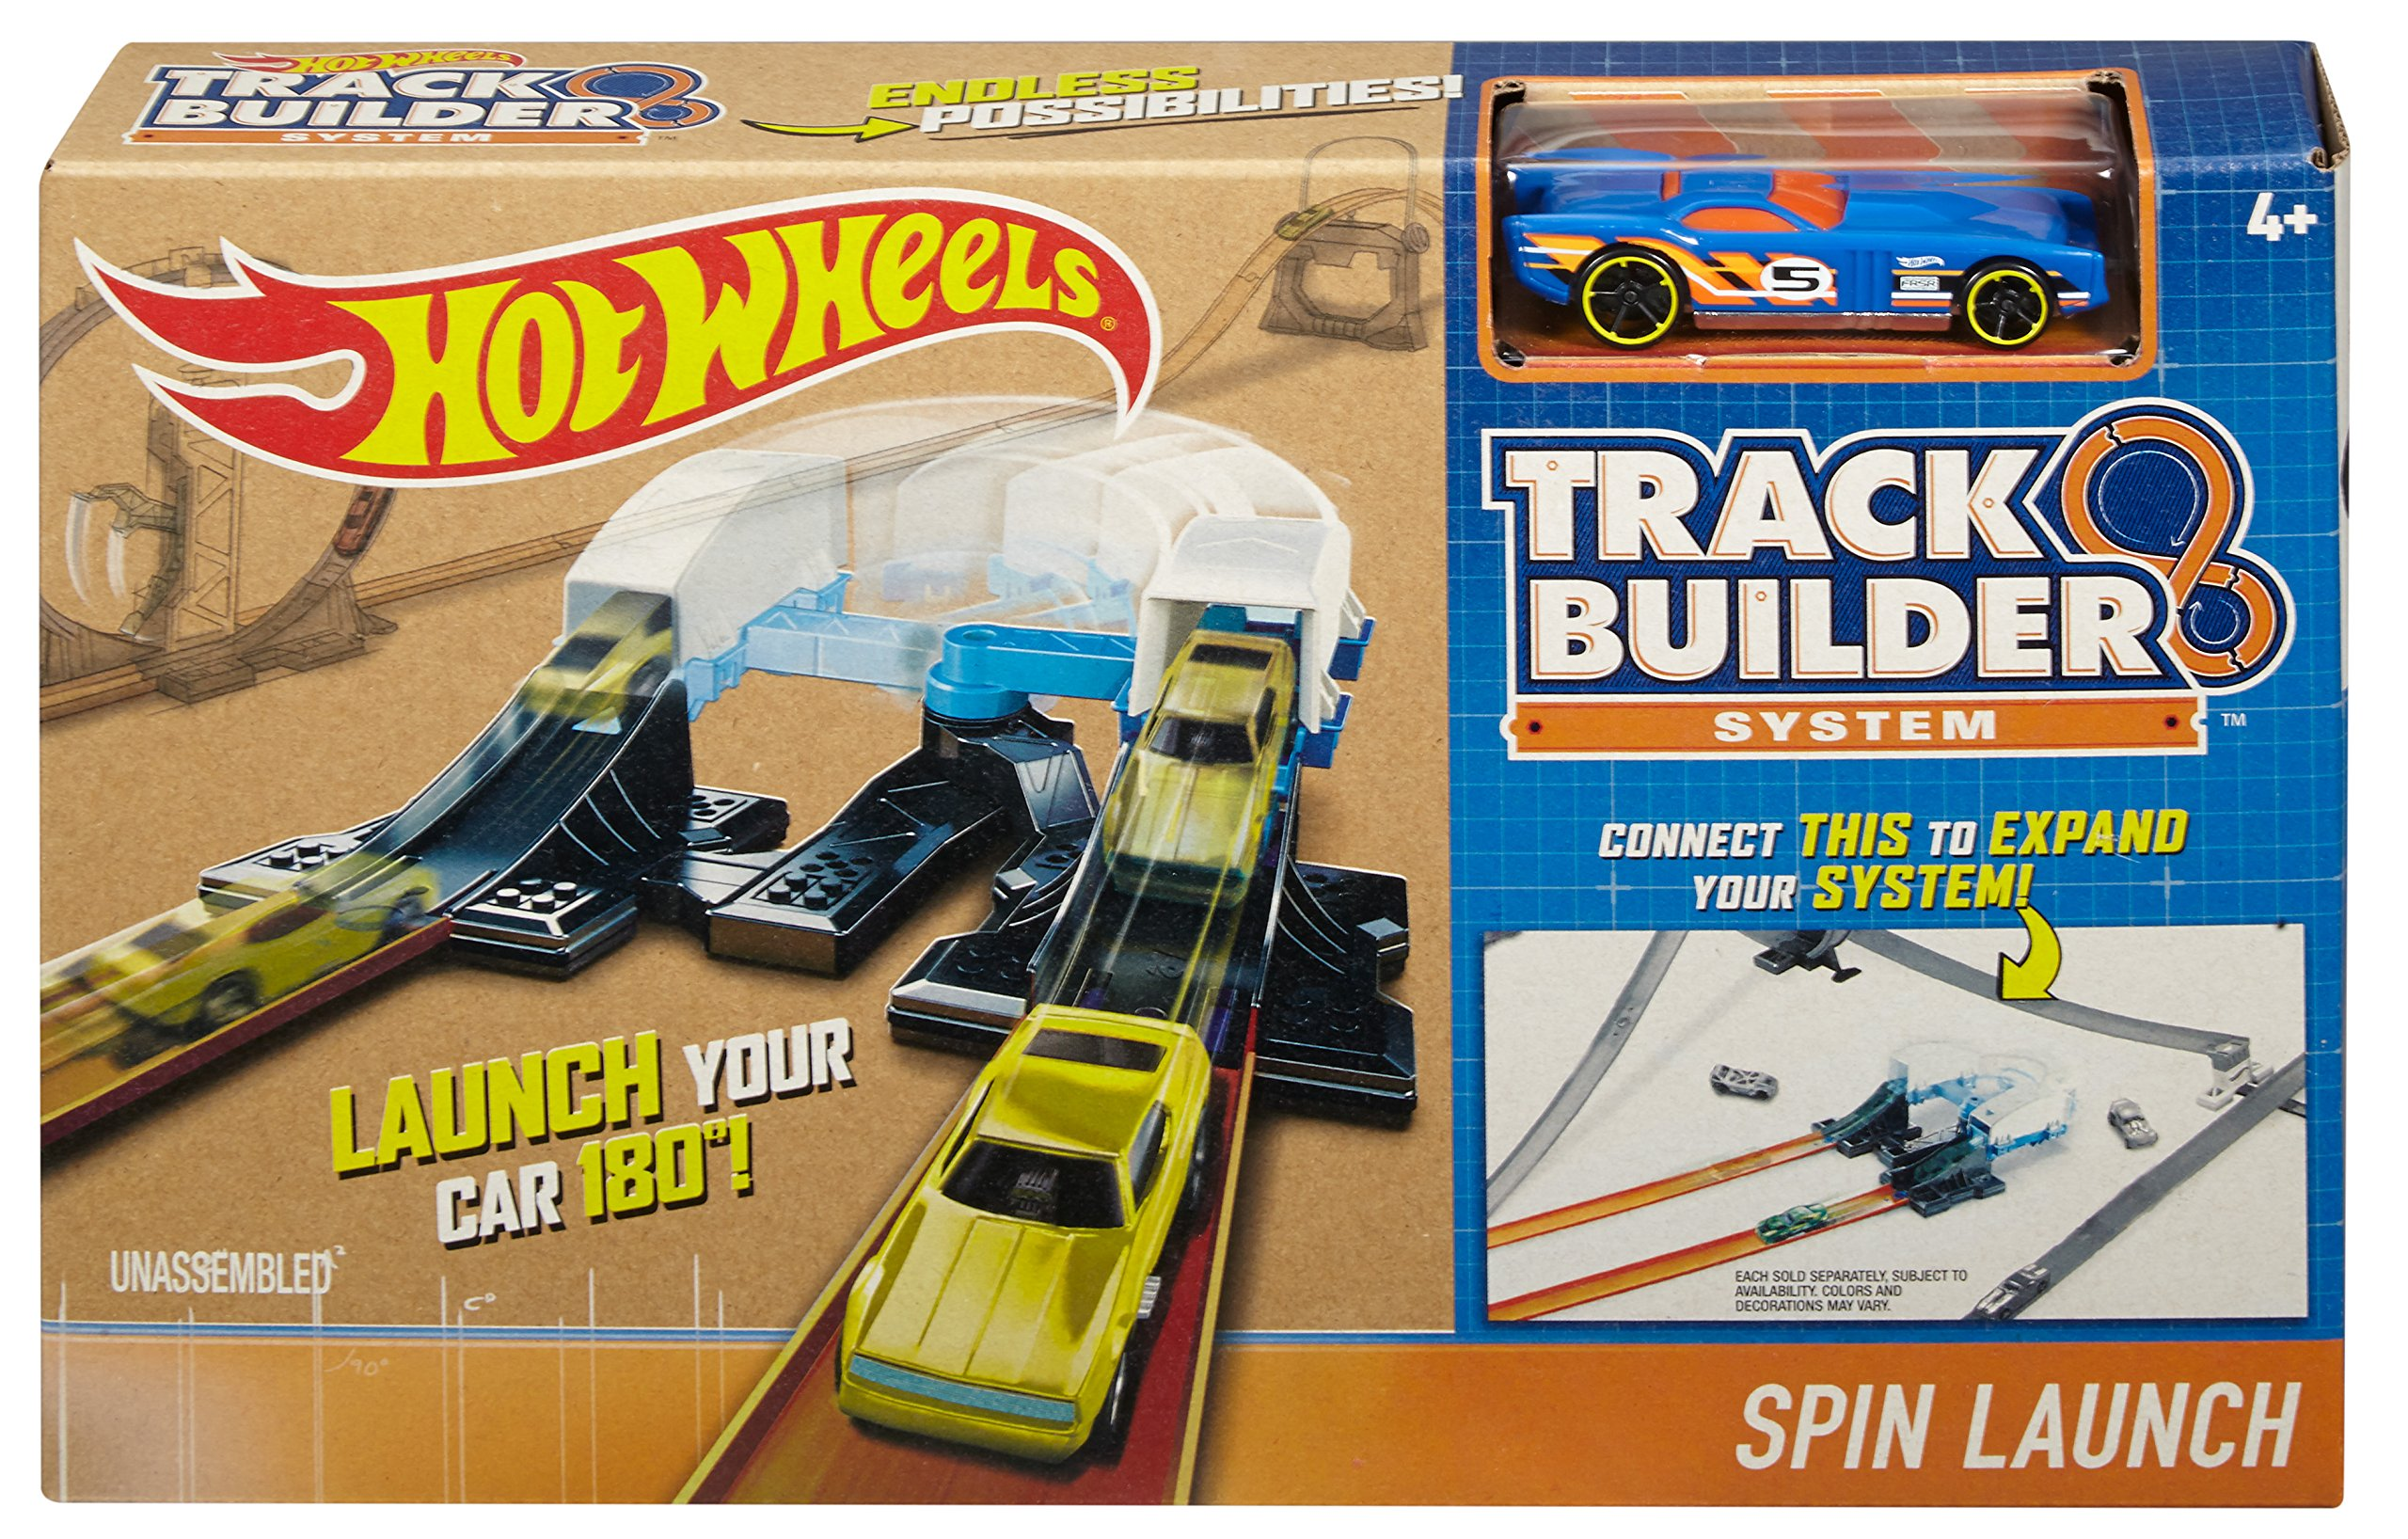 hot wheels track builder system power booster kit instructions